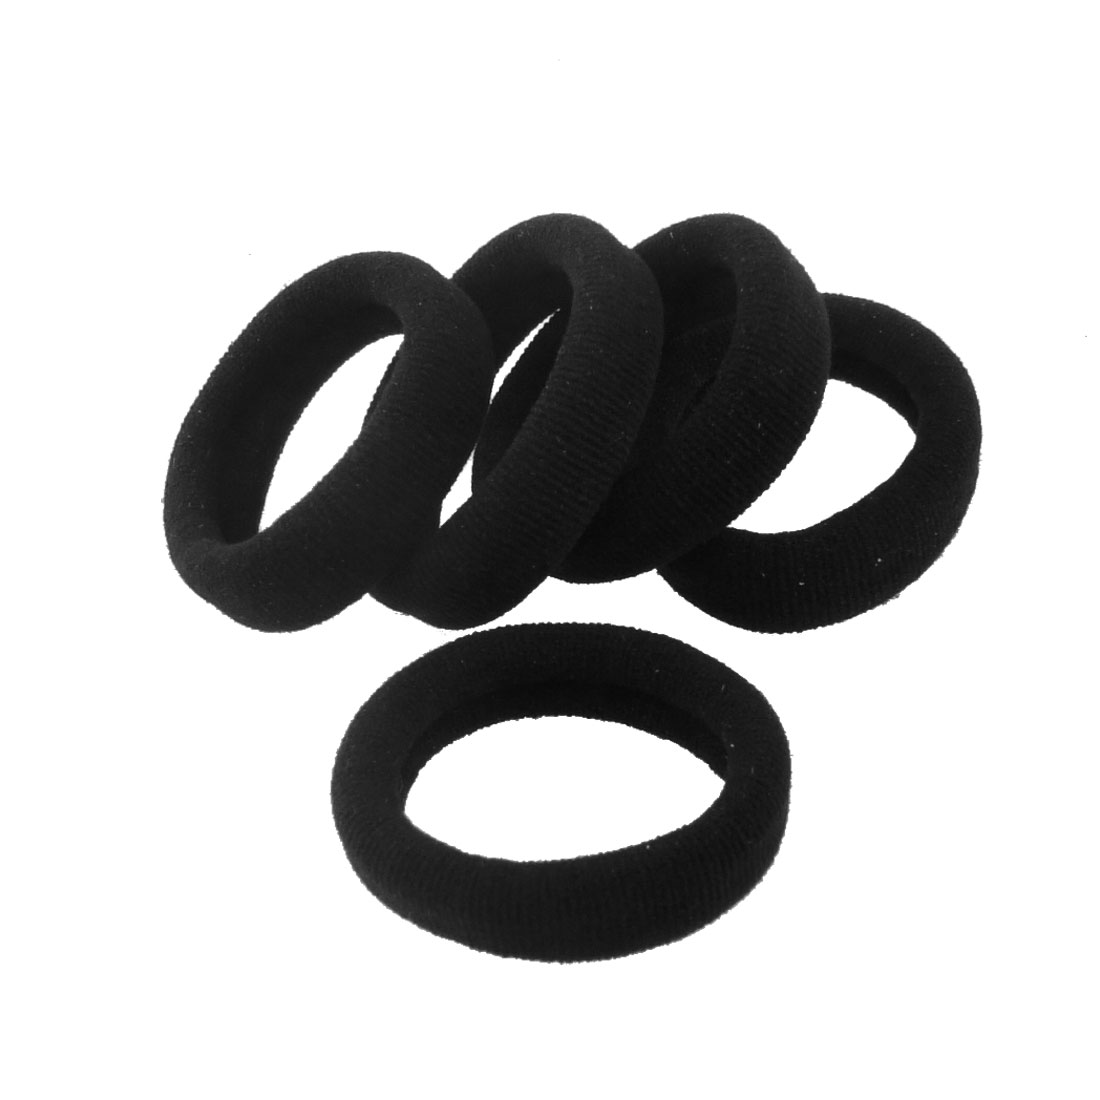 5 Pcs Black Stretchy Band Hair Tie Ponytail Holders